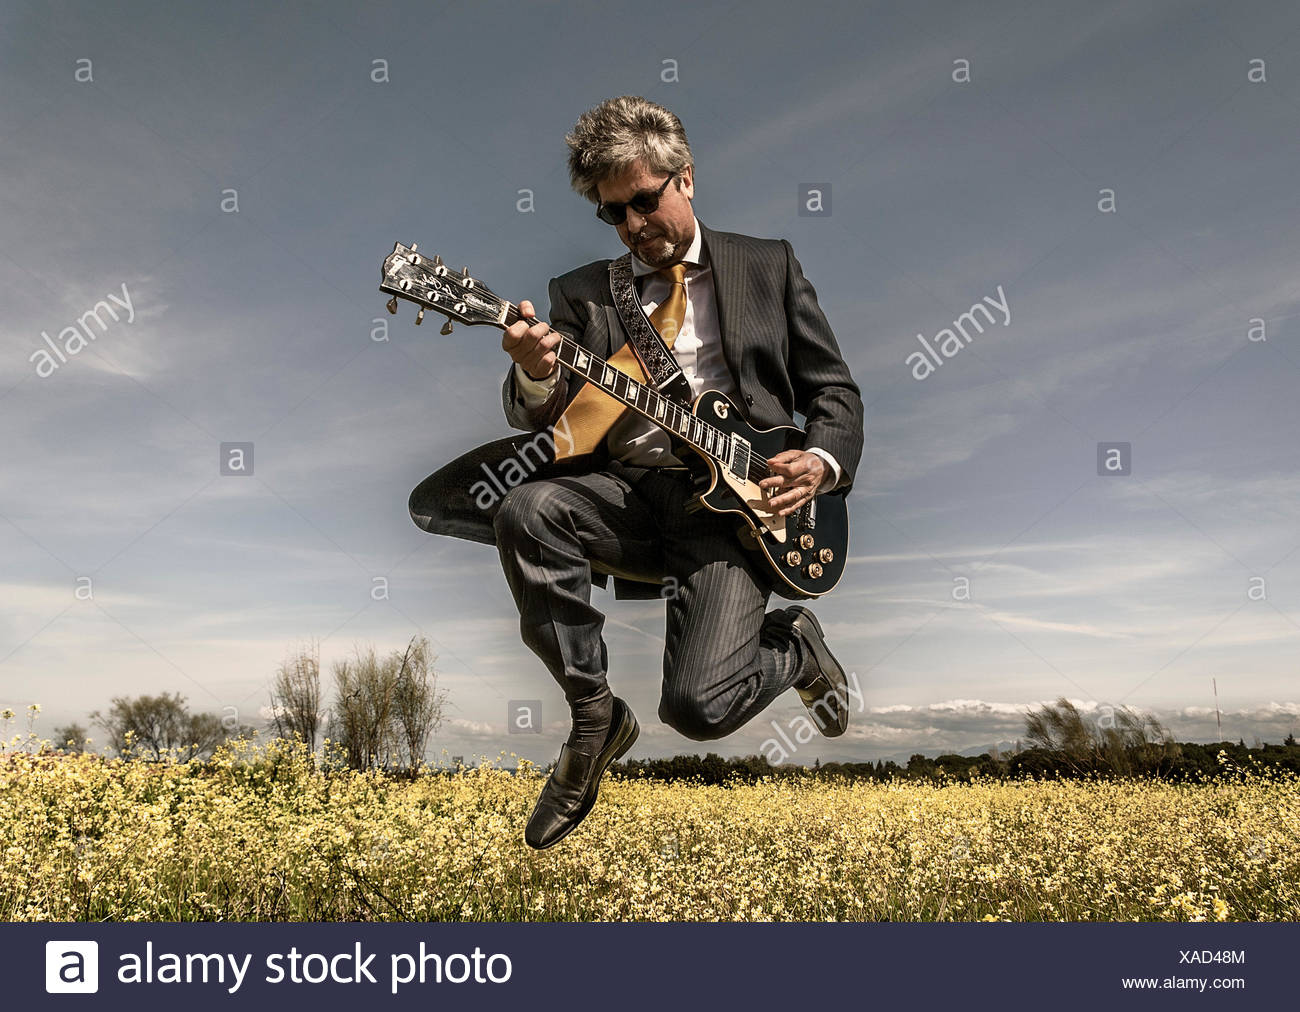 Businessman playing guitar in field - Stock Image